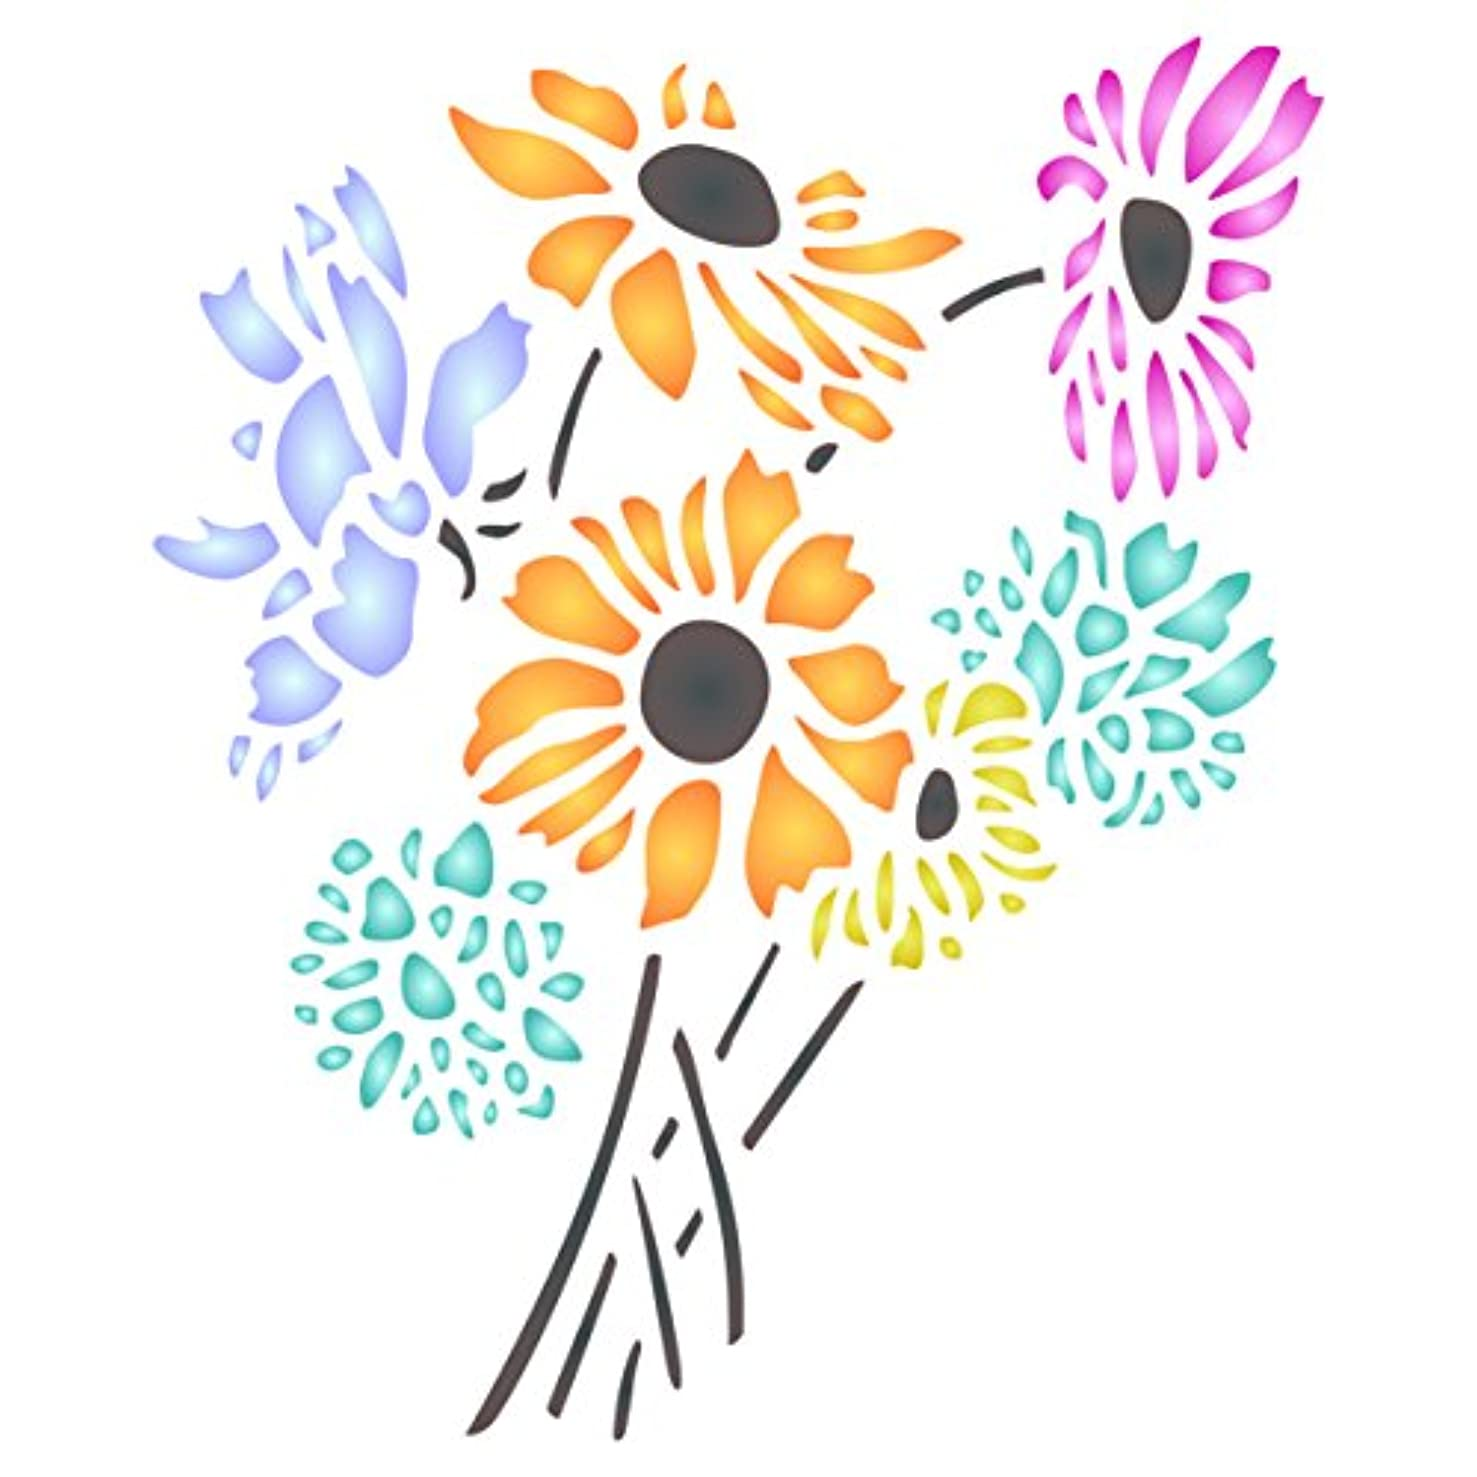 Daisy Flower Stencil - 8.5 x 10.5 inch (L) - Reusable Flora Bouquet Bunch Wall Stencils for Painting - Use on Paper Projects Scrapbook Journal Walls Floors Fabric Furniture Glass Wood etc.